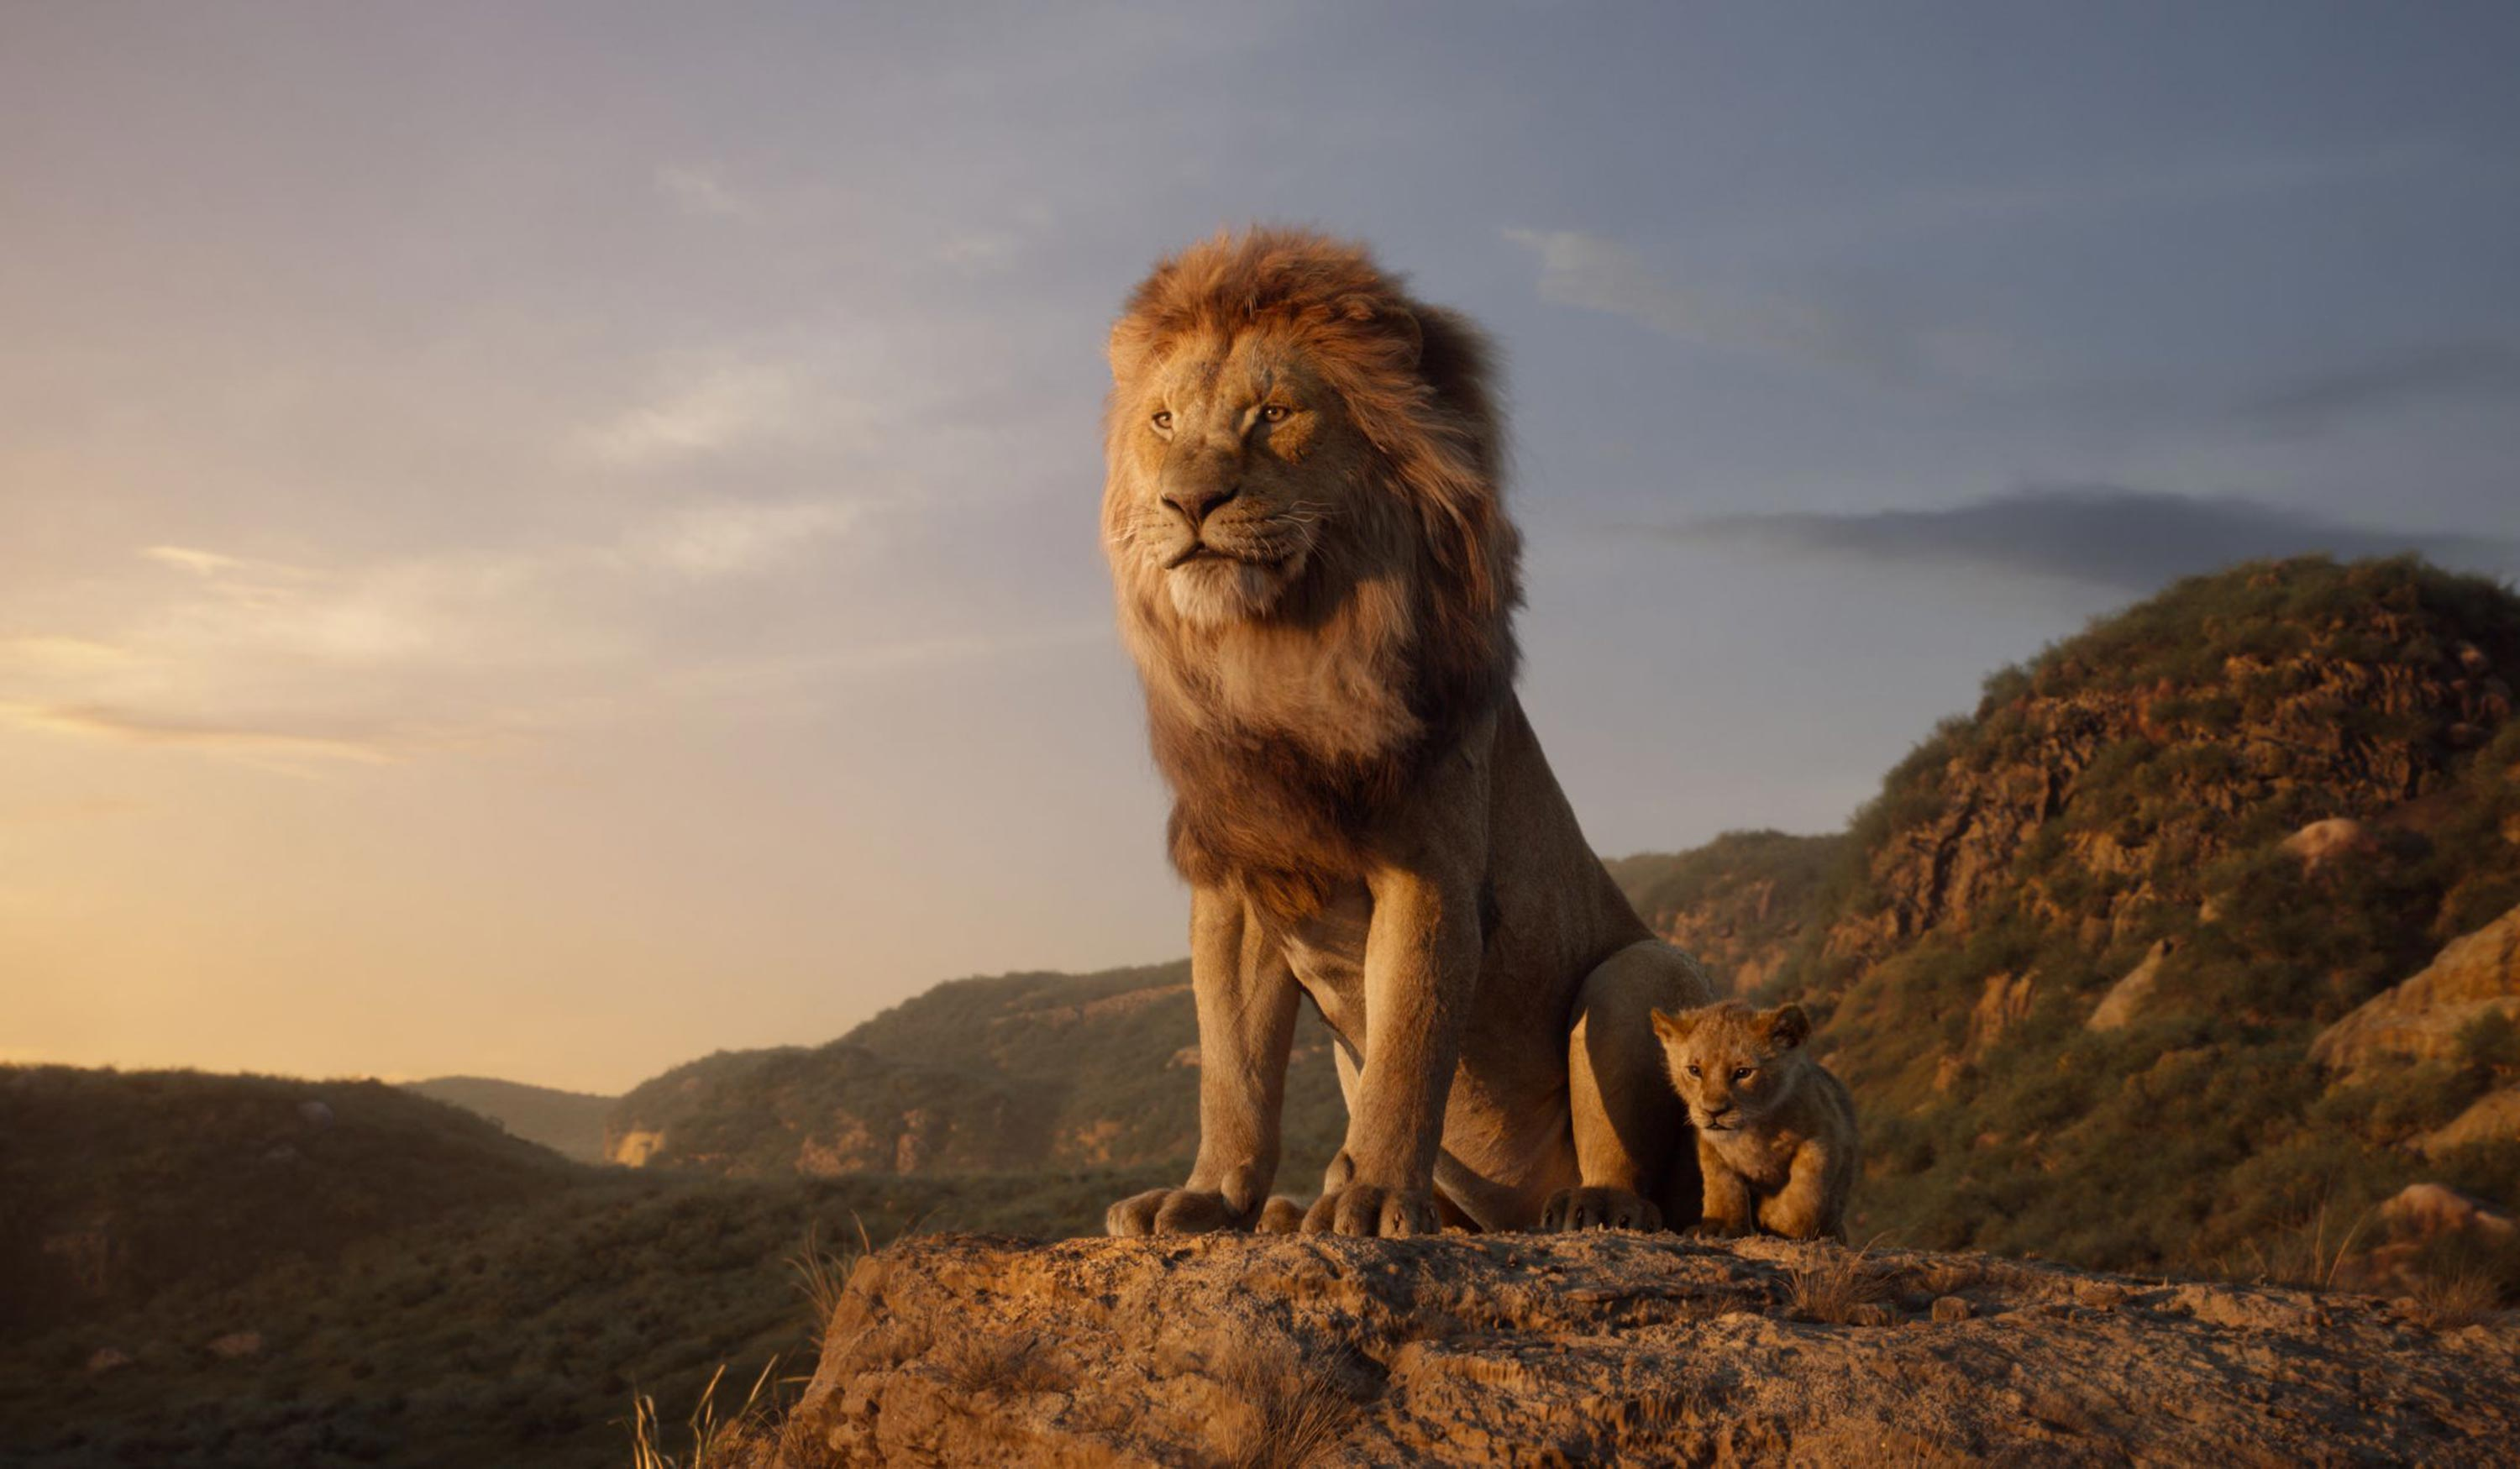 Mufasa and Simba in Disney's The Lion King